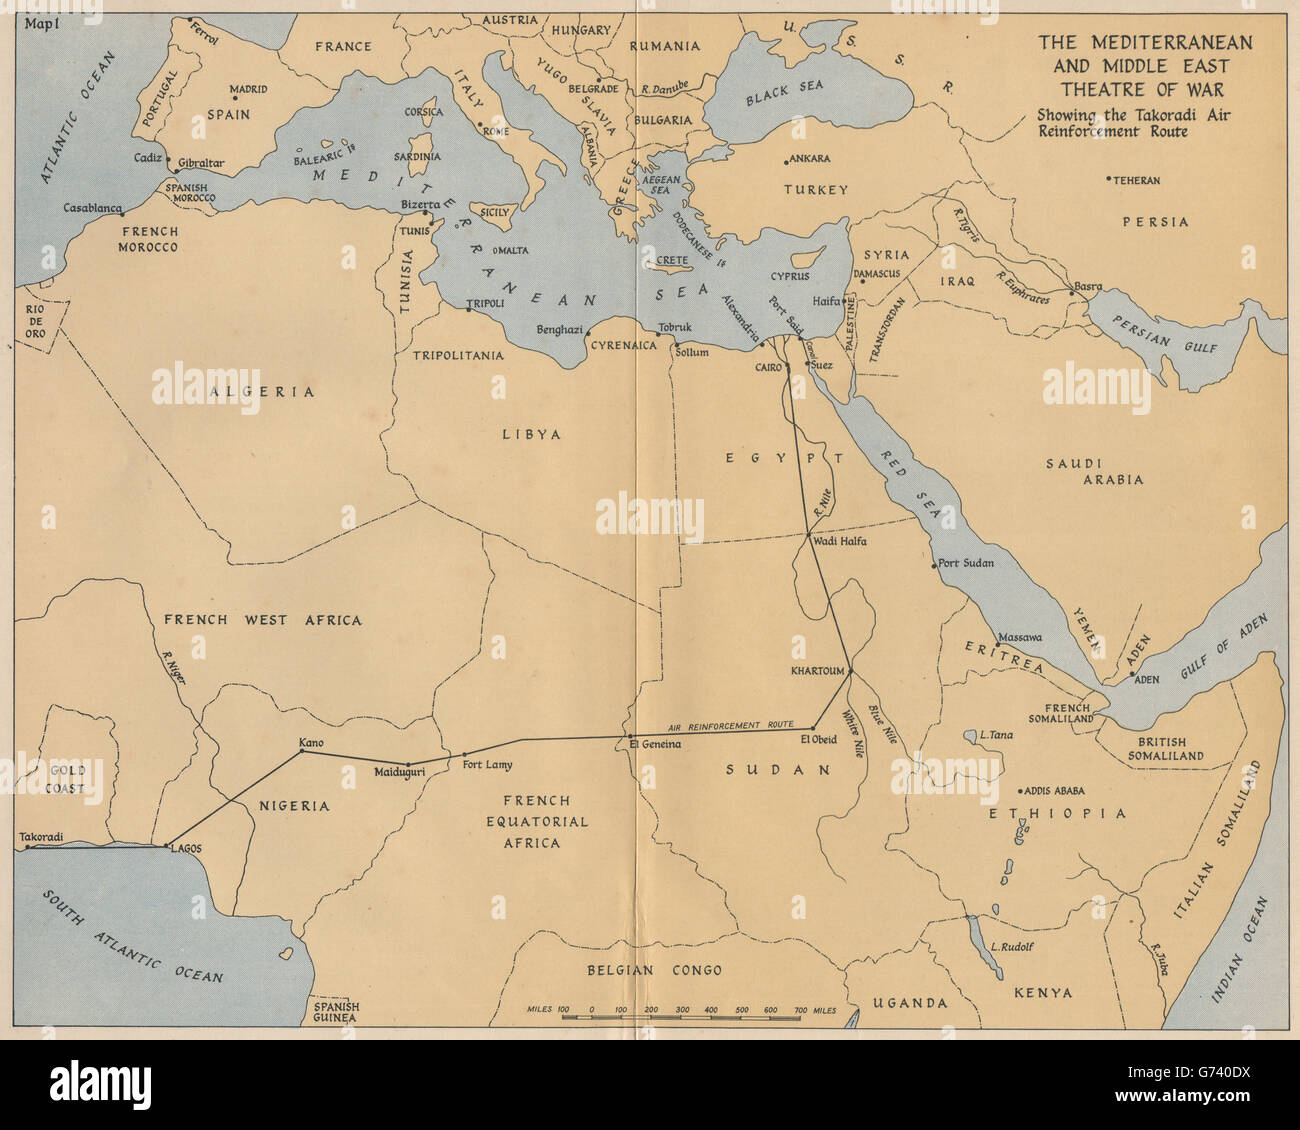 Middle East Map Before Ww2.Ww2 Mediterranean Middle East Theatre South Atlantic Air Ferry